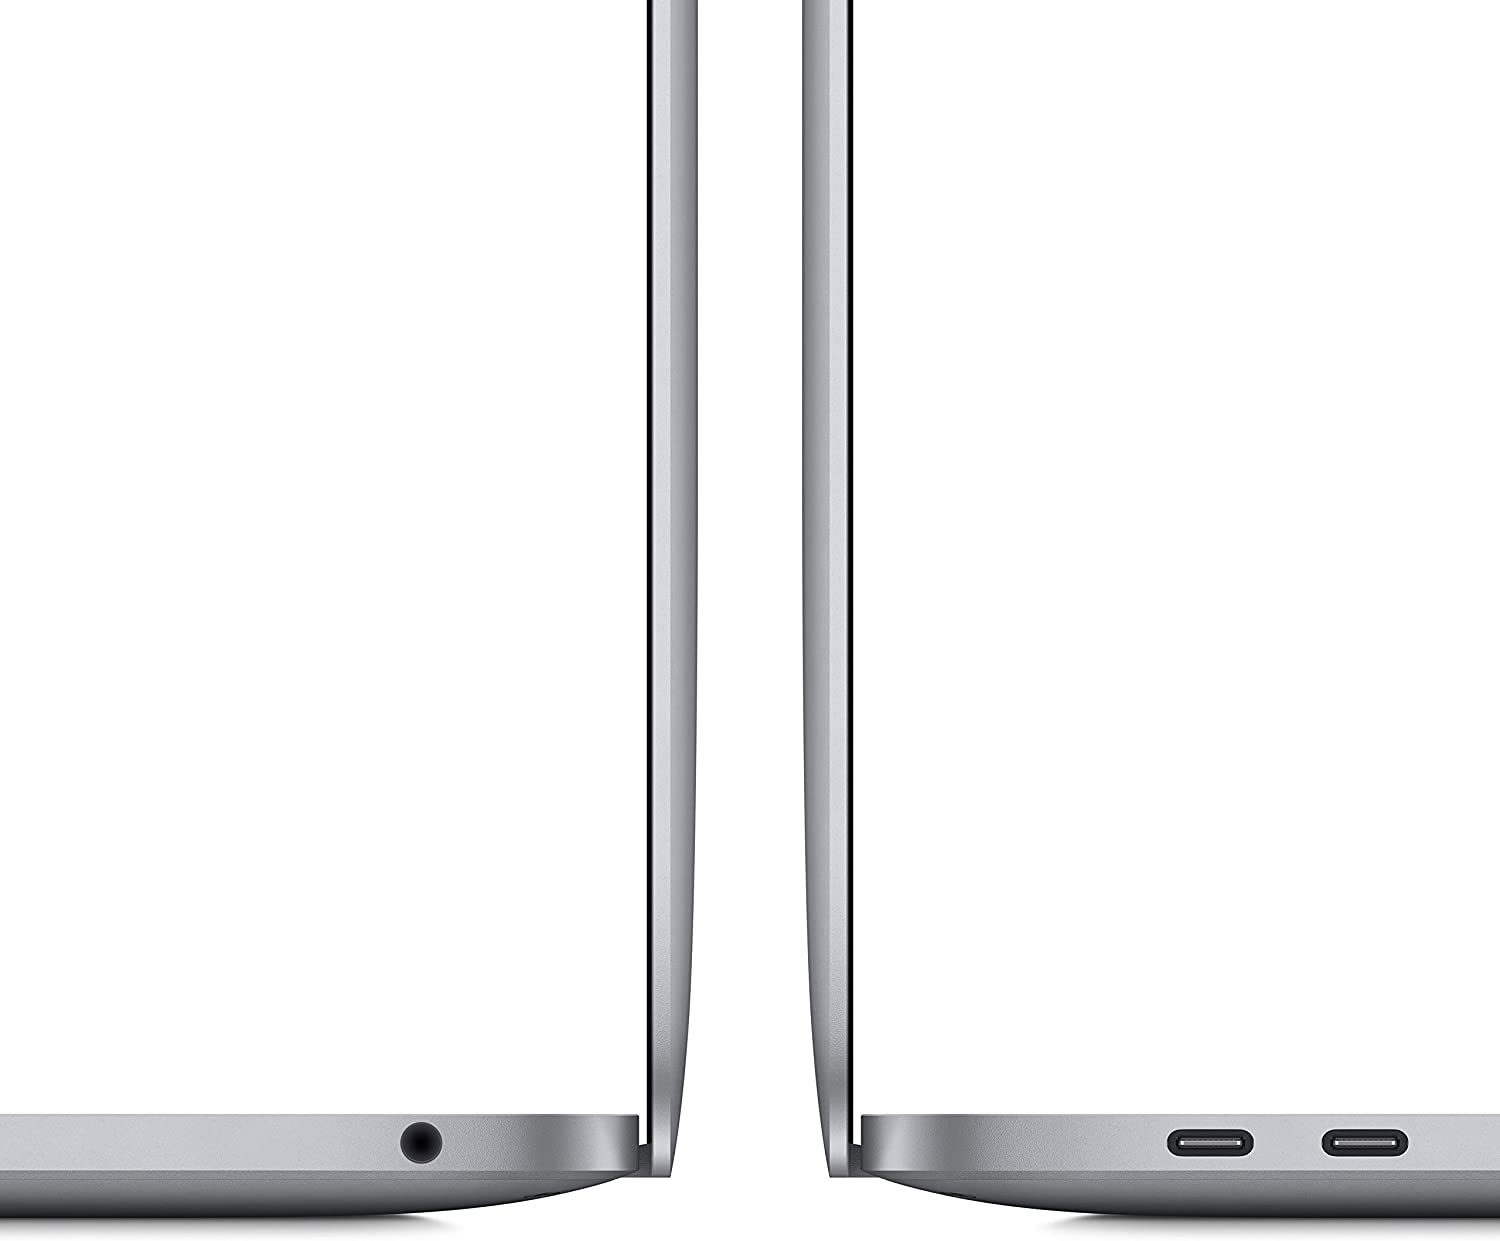 storage/backend/assets/images/product/1616759153nUP0-Mac-pro-m1-4.jpg